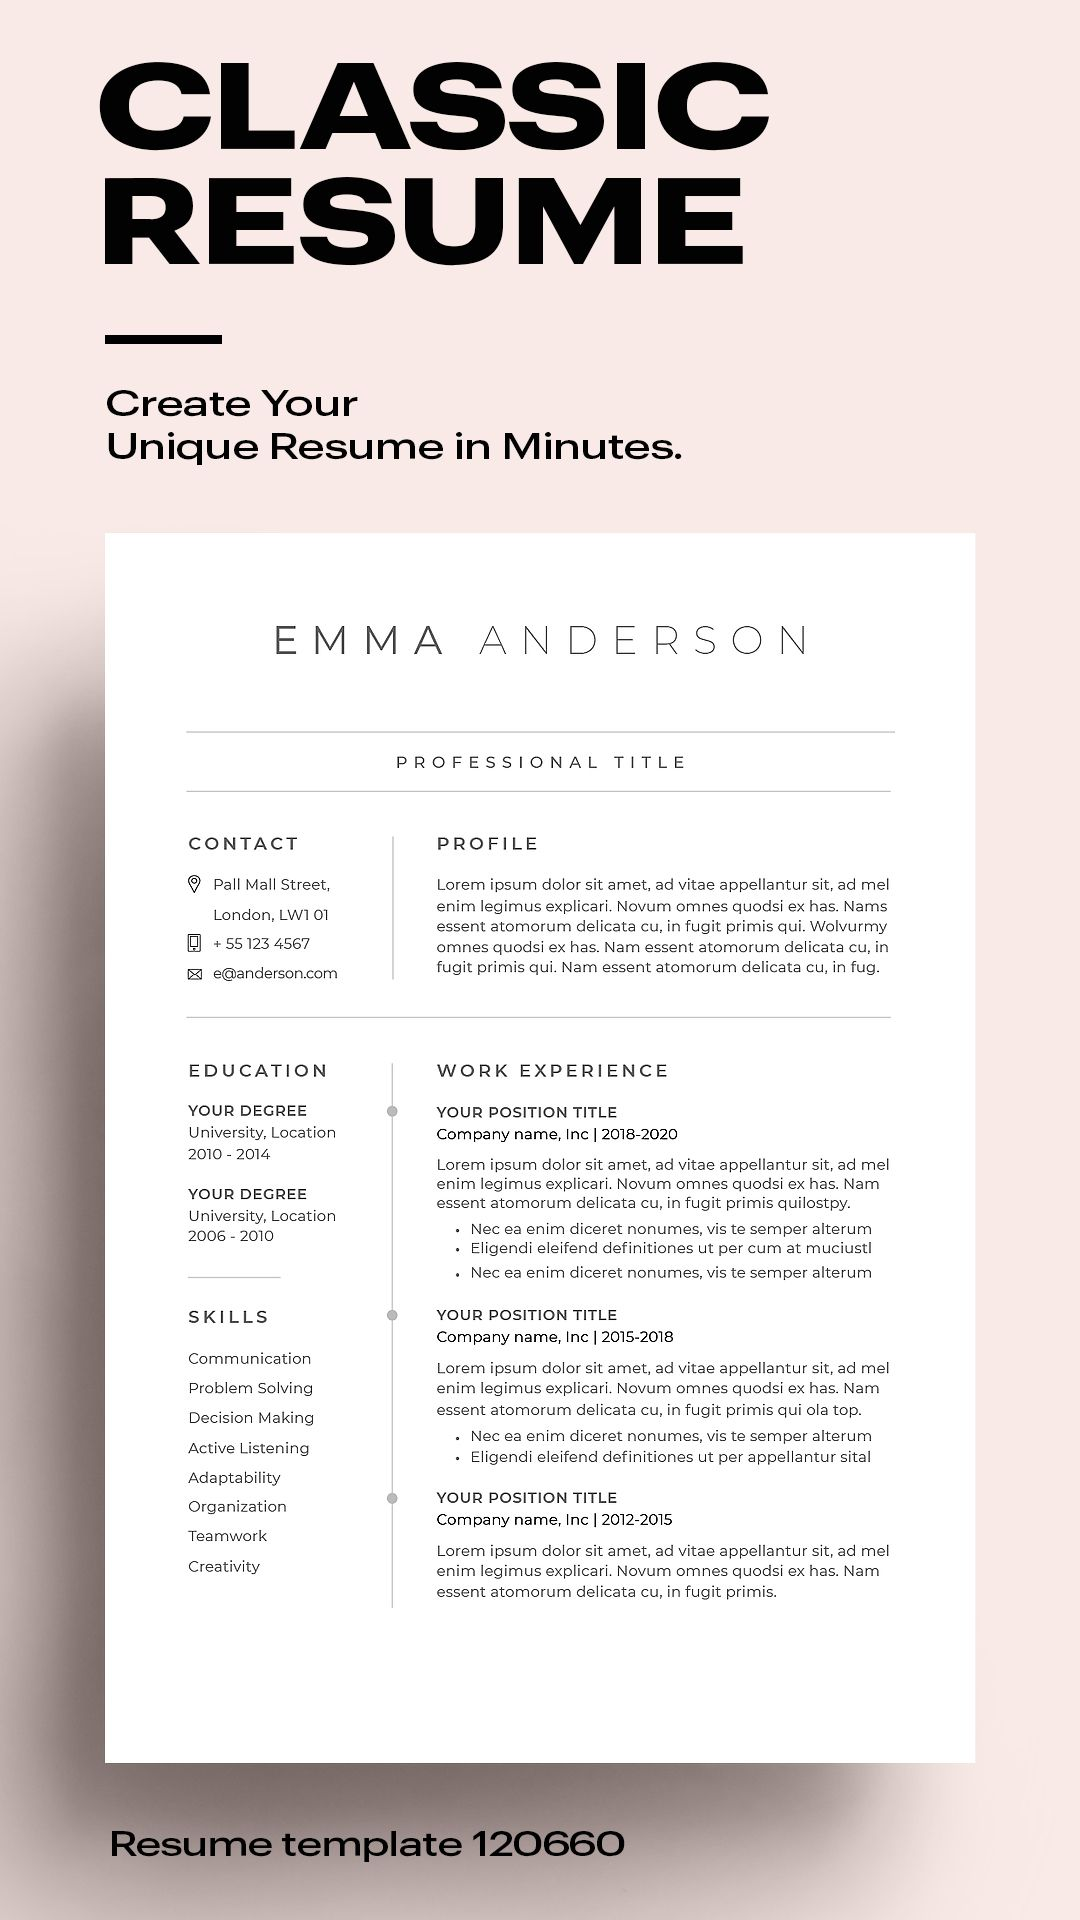 Classic Resume Template 120660 (color grey) MS Word